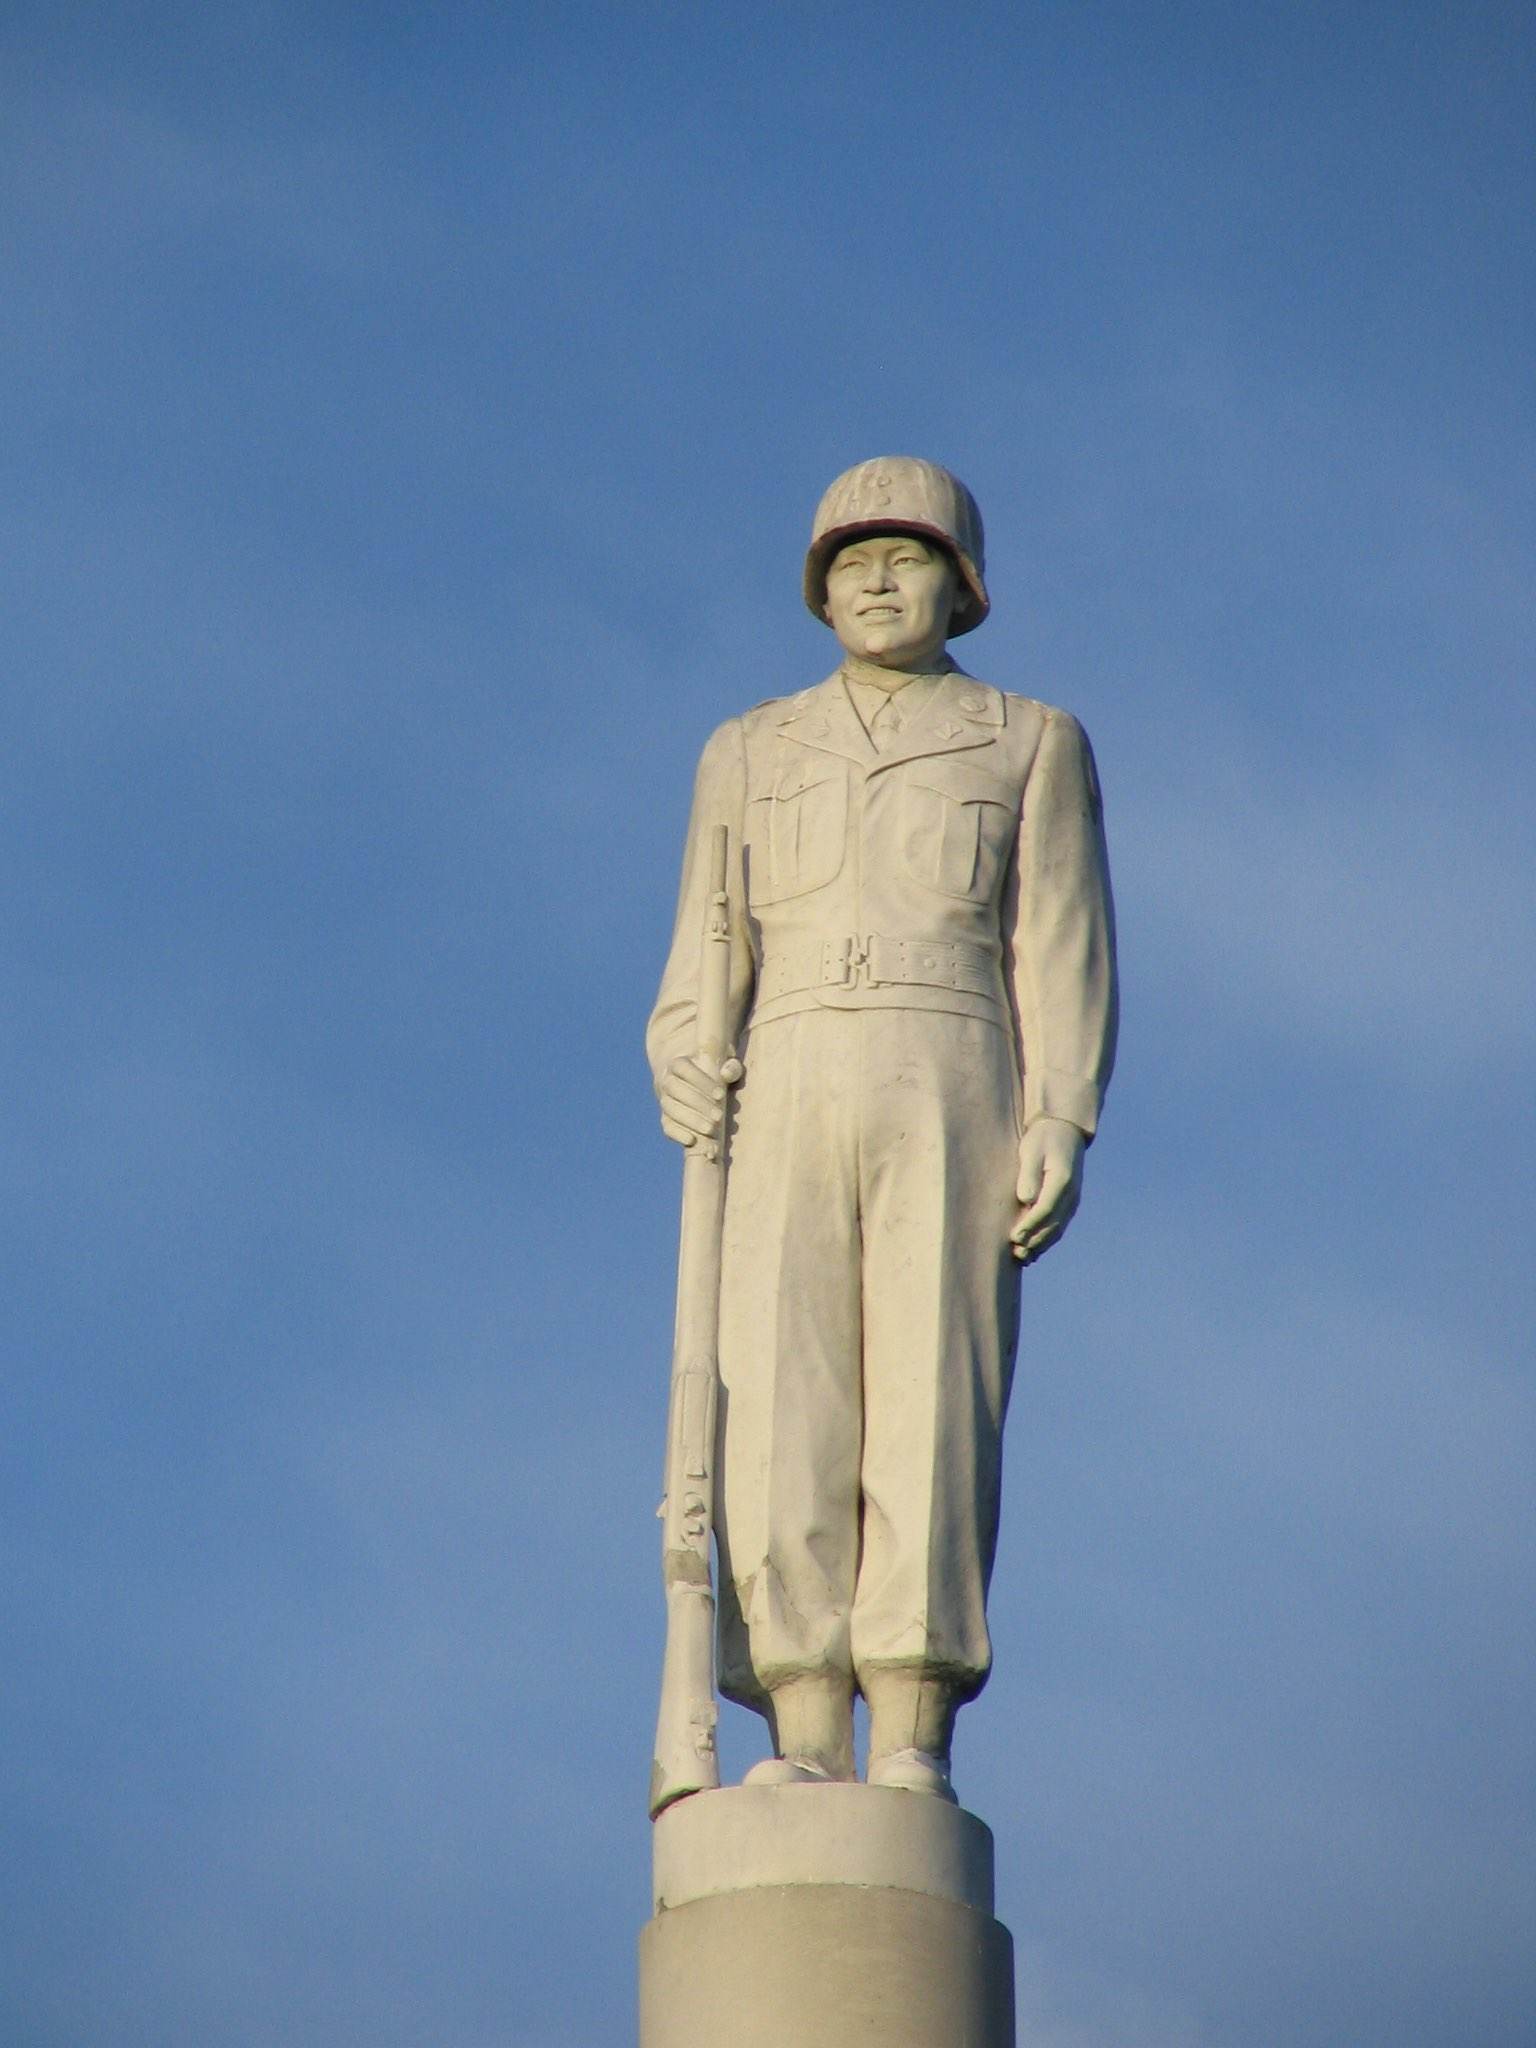 Japanese Soldier Statue